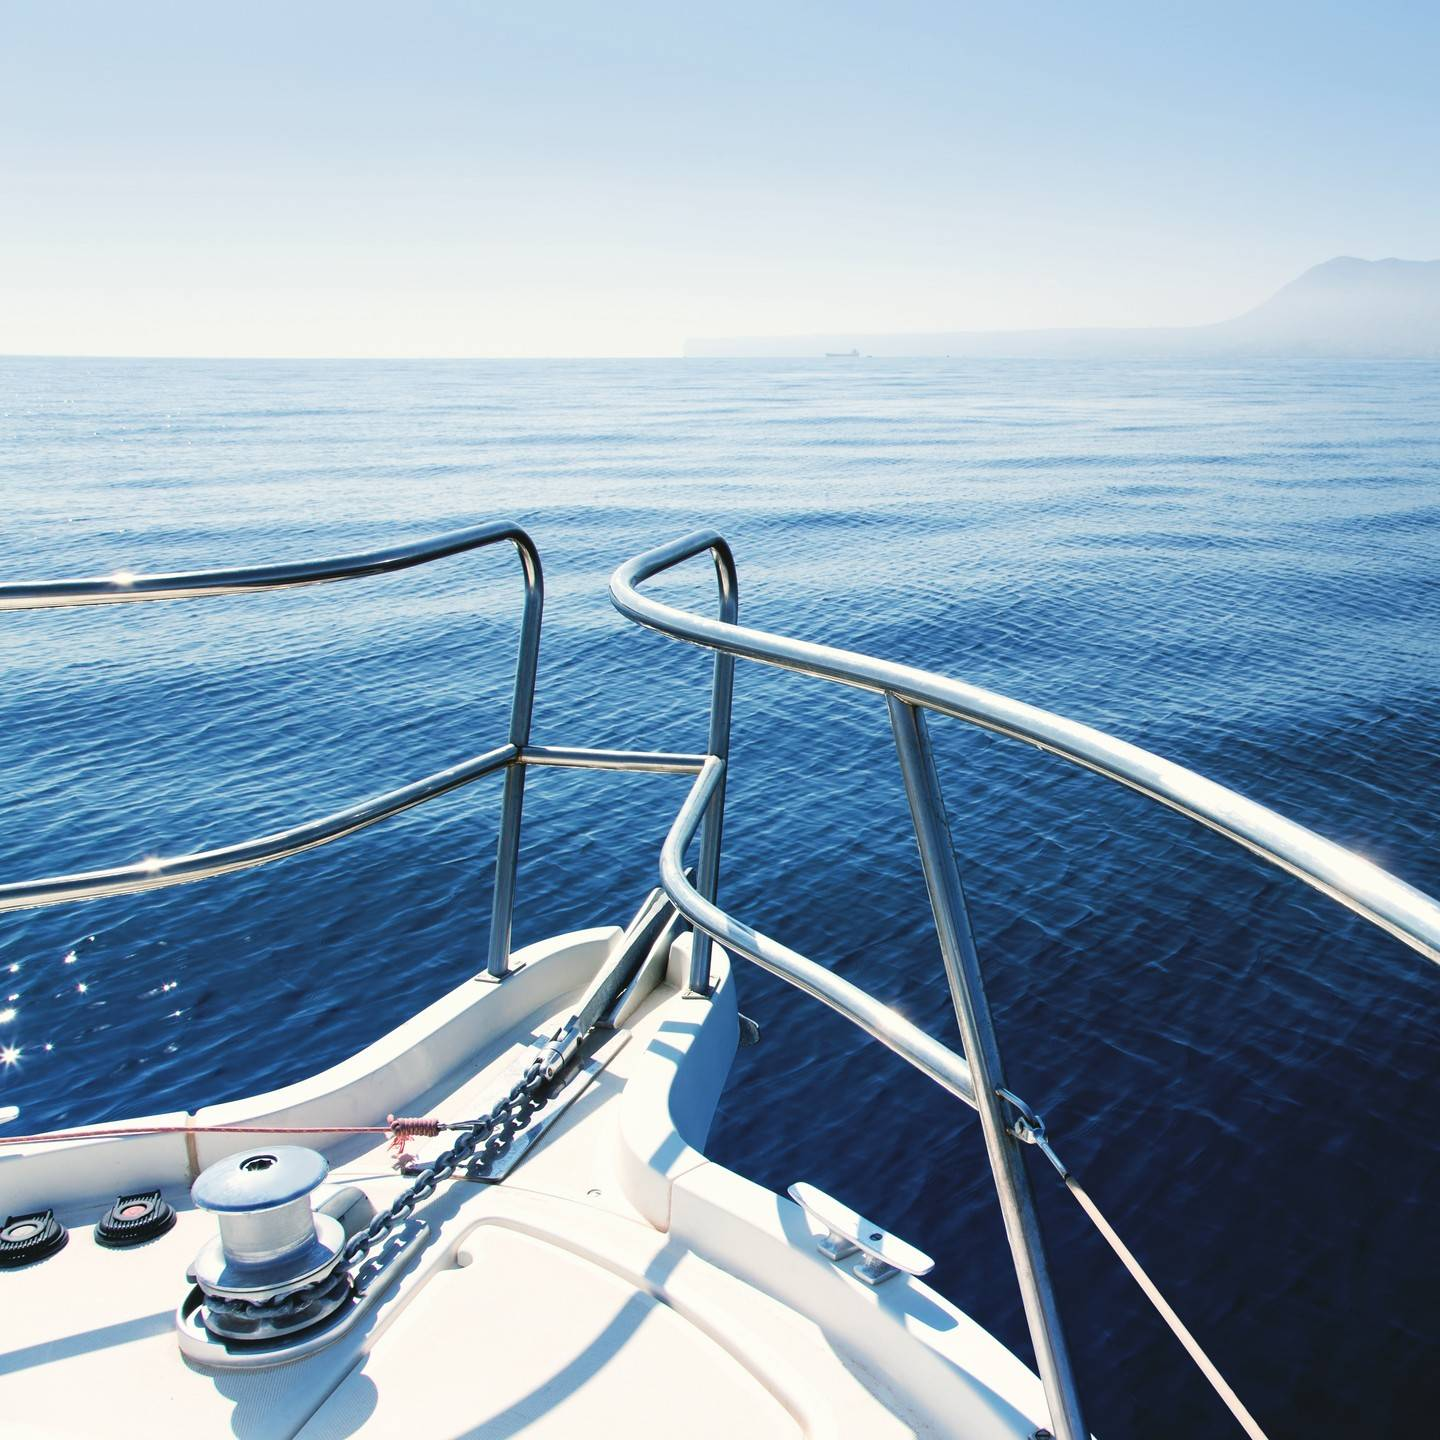 """Almost here 🎉🎊🆕️ Our Fountaine Pajot Astrea 42 Quatuor """"Macho"""" on her way!  Book your #angelinaexperience  #angelinayachtcharter #catamarans #fountainepajot #fountainepajotcatamarans #booknow"""